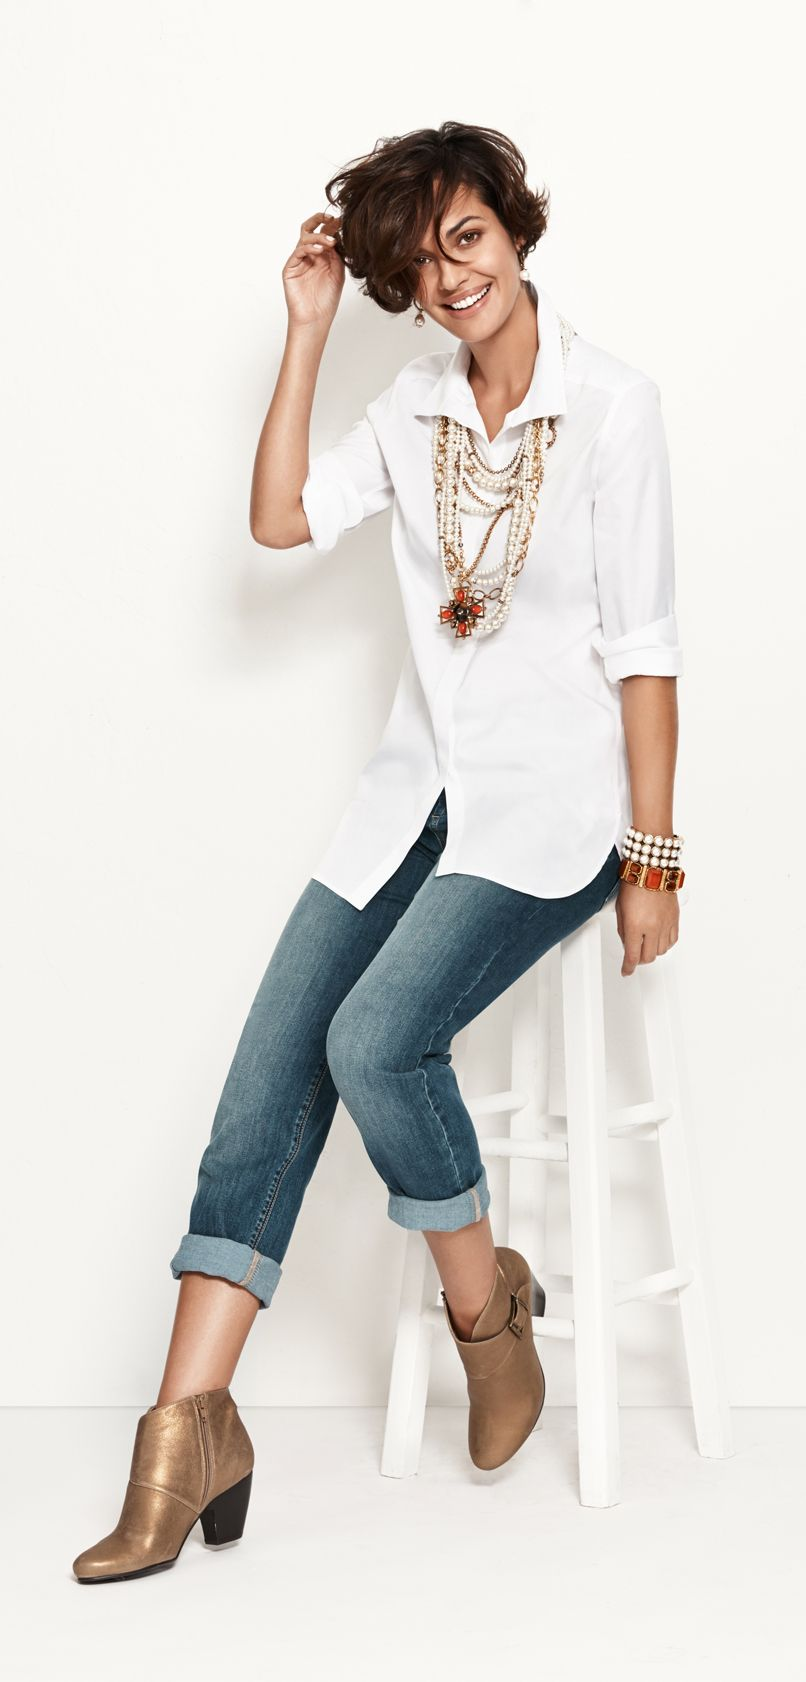 Bold Pearls Now With casual cuffed denim. | casual outfits | Pinterest | Best Bald hairstyles ...